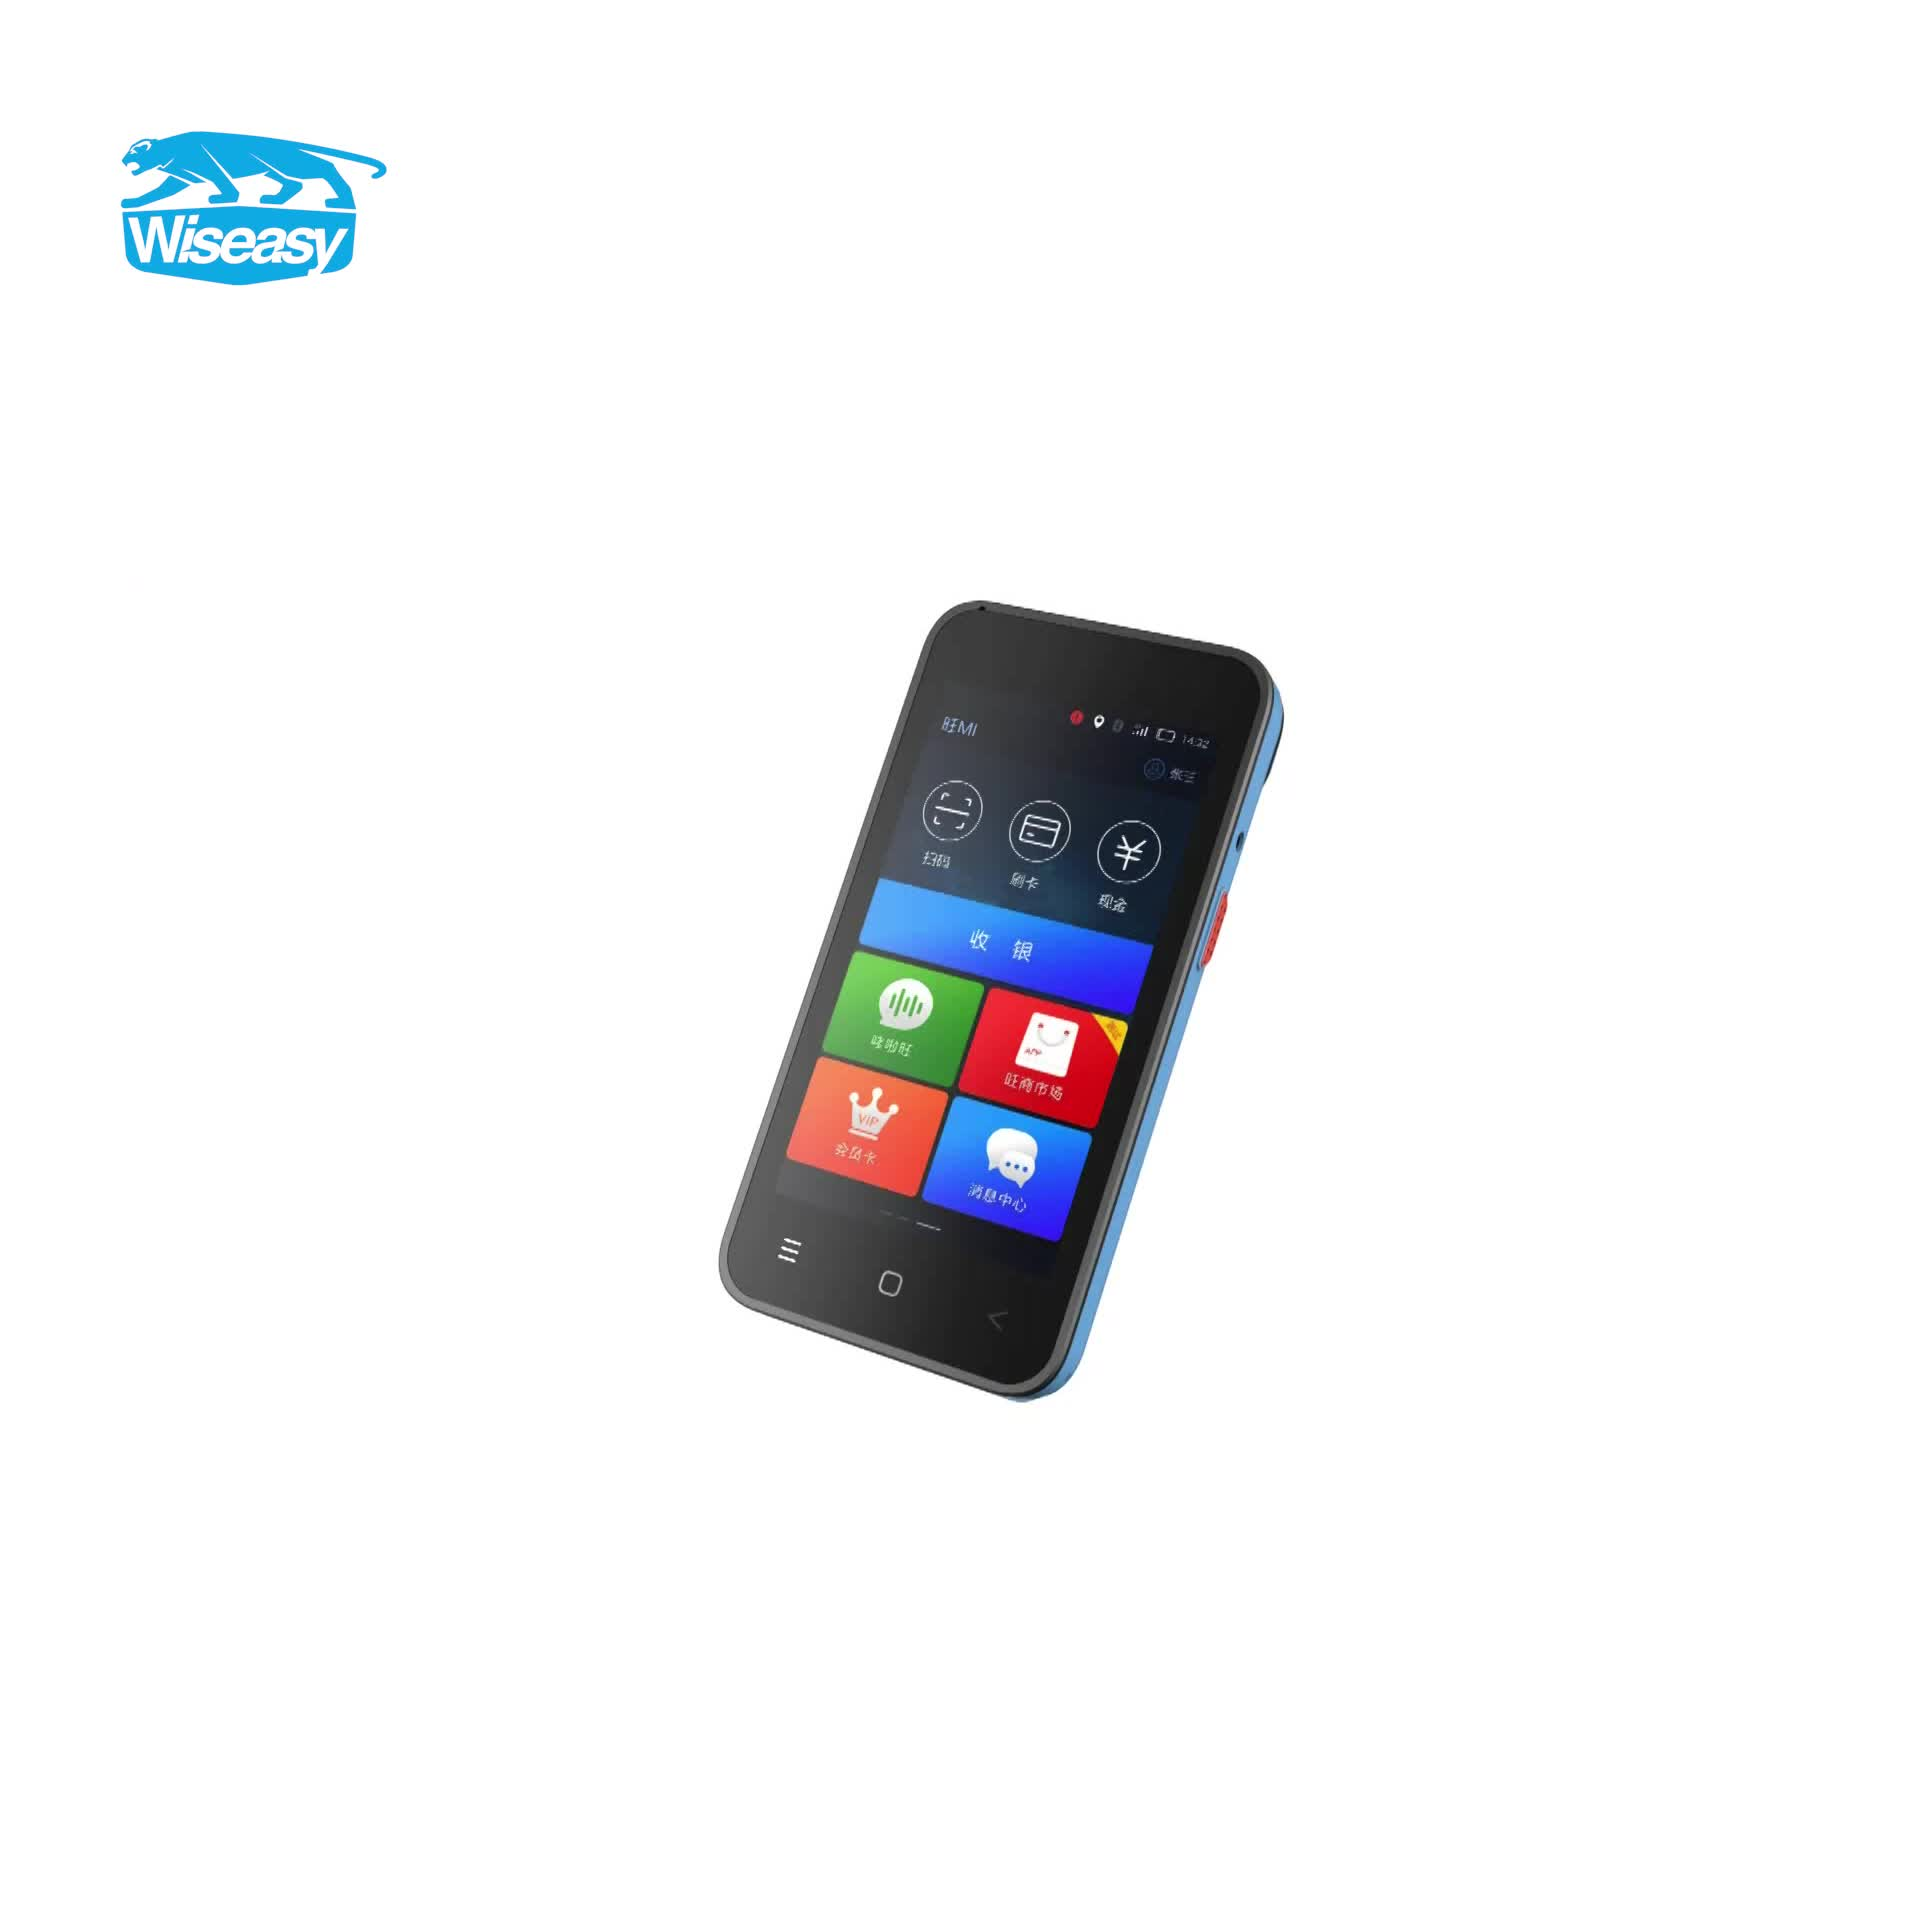 WPOS- MINI 4.5 pollici touch screen 4G mobile android terminale pos pos android con stampante